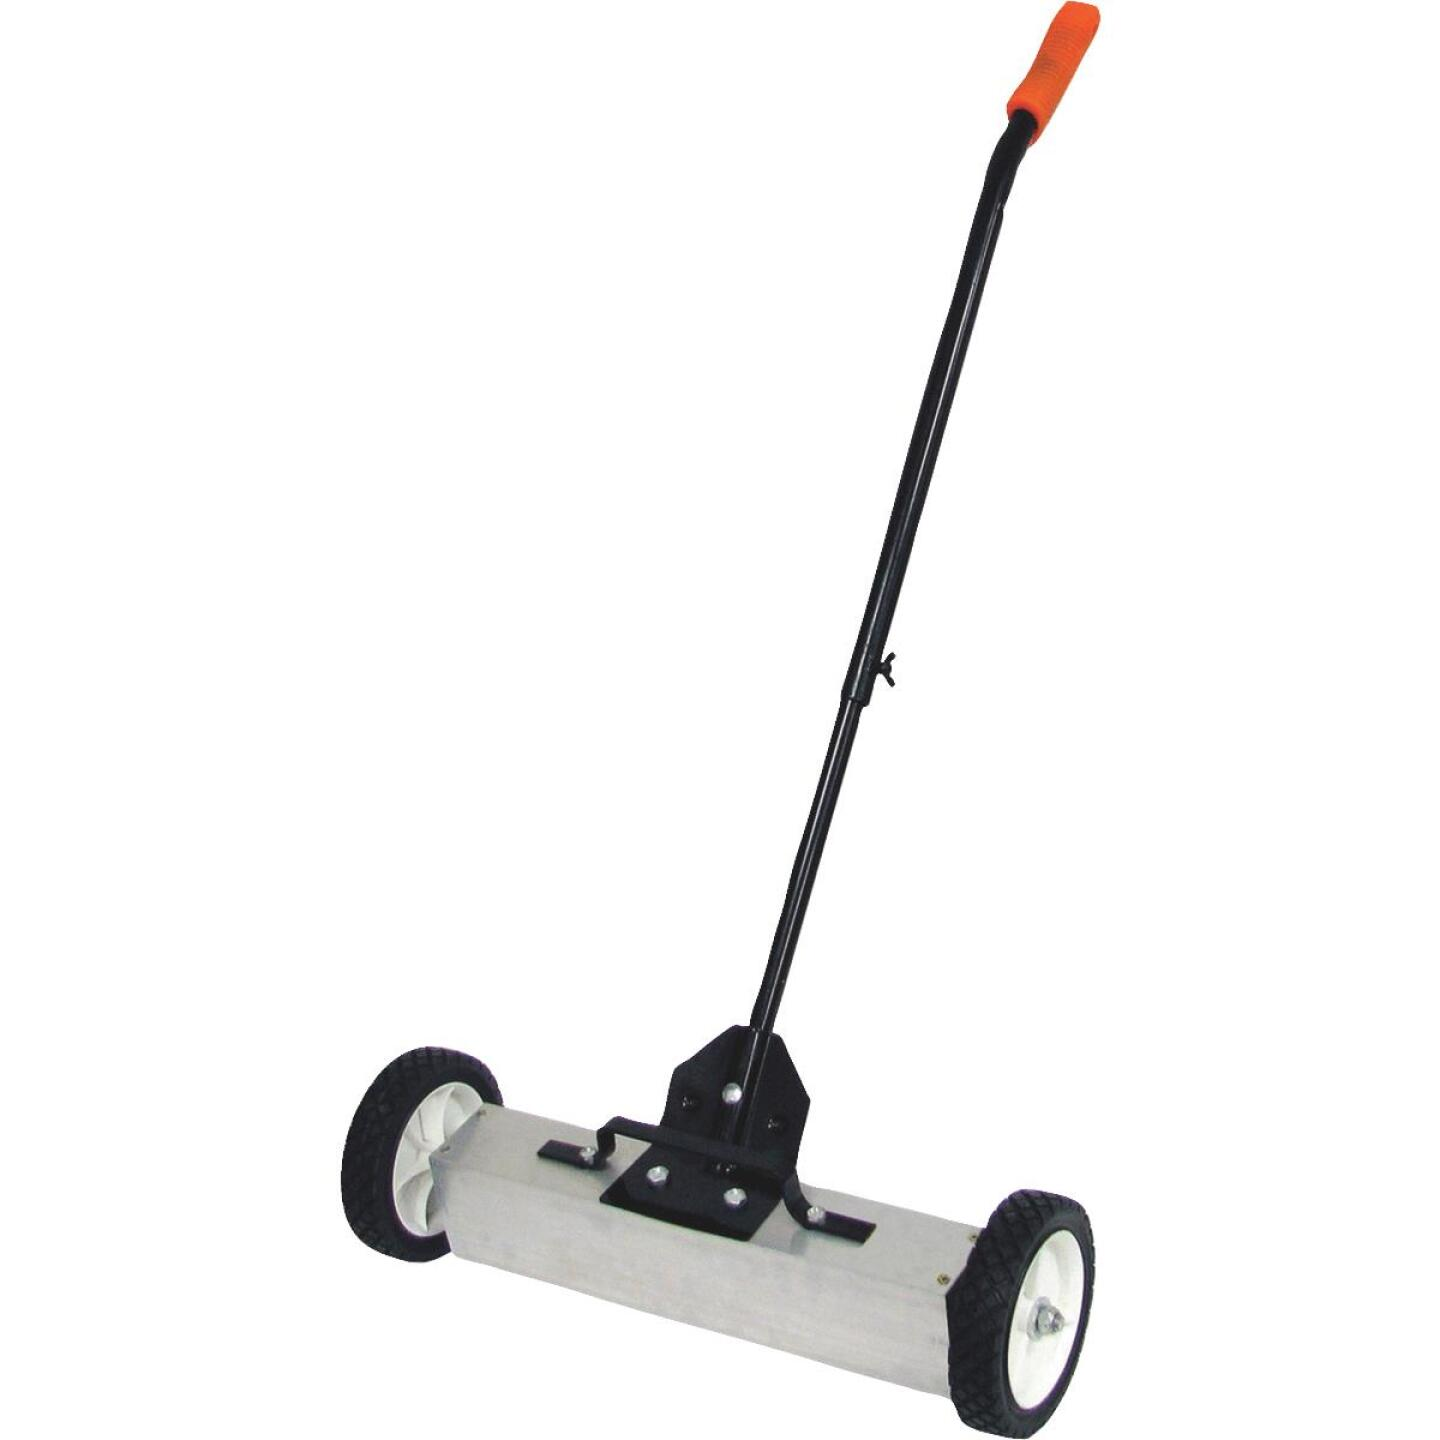 Master Magnetics 18 in. Magnetic Floor Sweeper Image 1